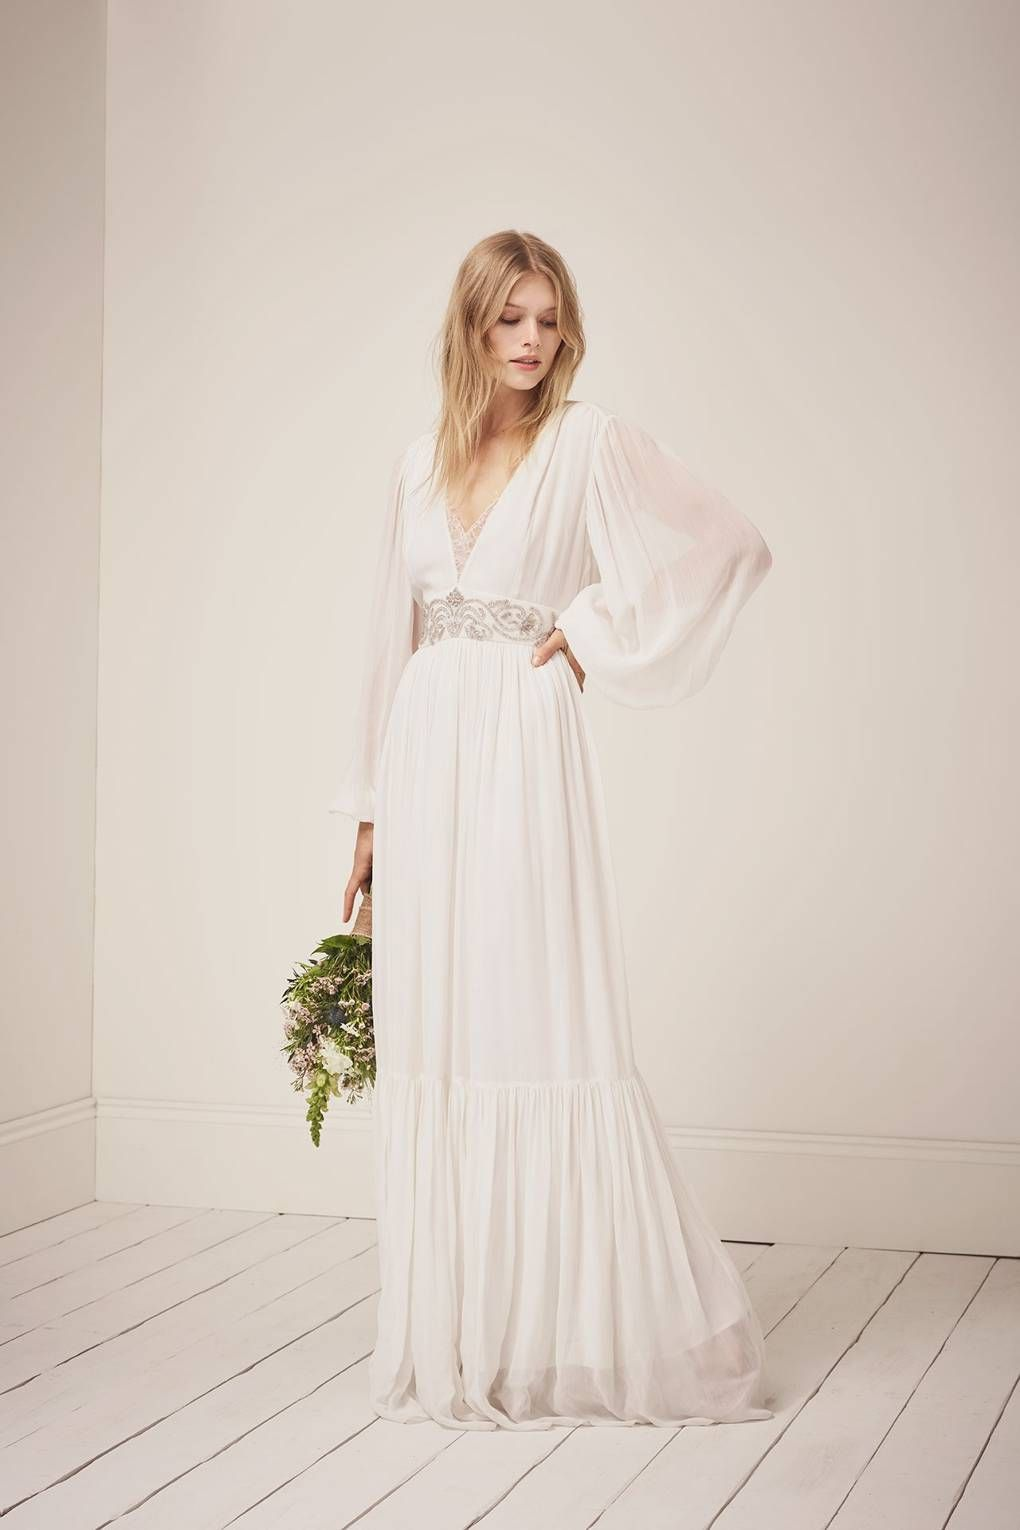 Affordable bohemian wedding dresses  The First Ever French Connection Wedding Dress Collection Is Here